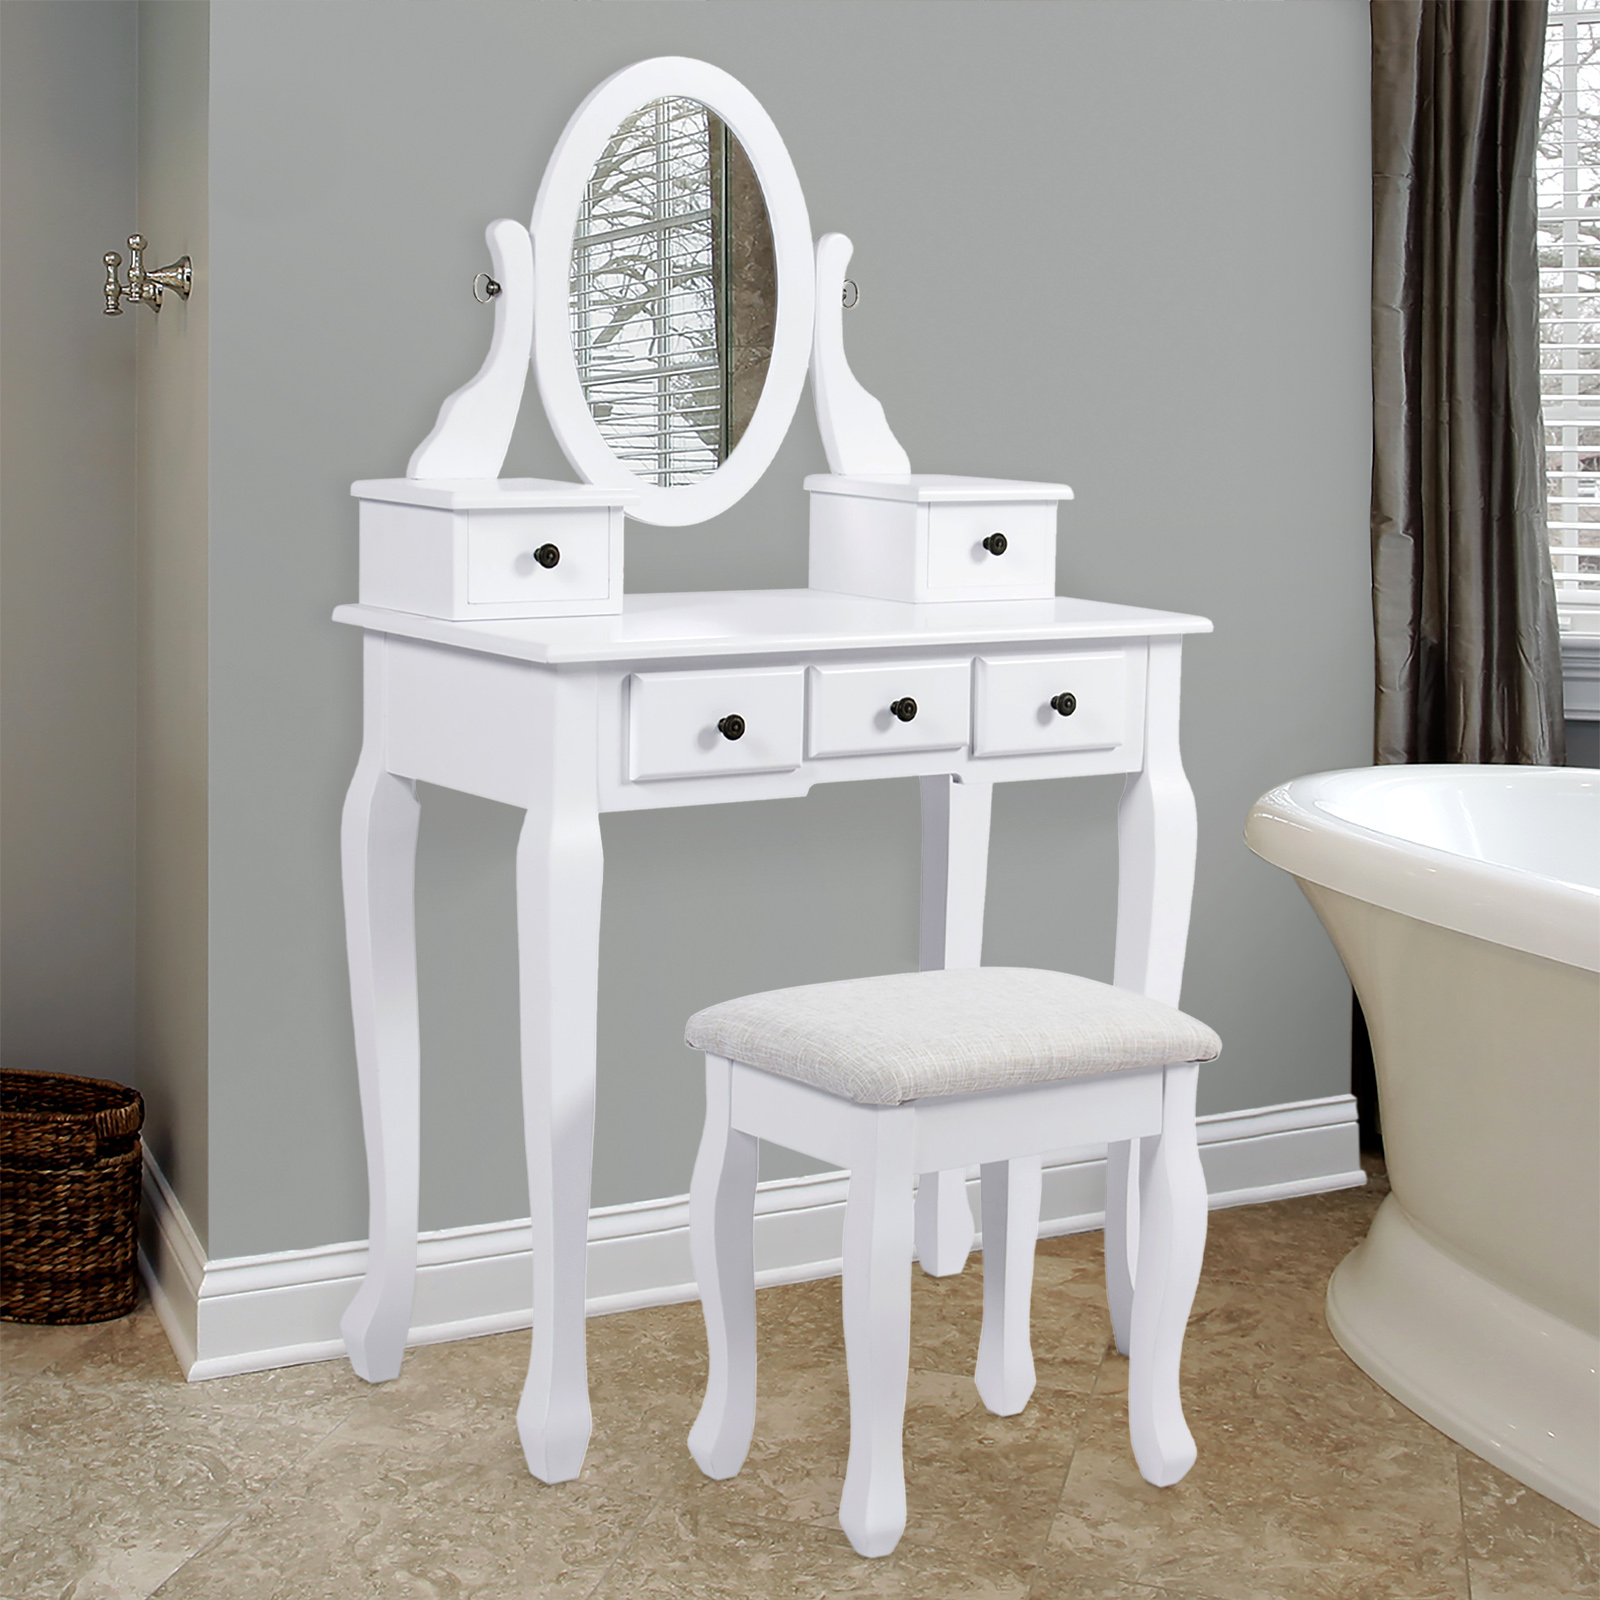 Bathroom Vanity Table bathroom vanity table jewelry makeup desk hair dressing organizer